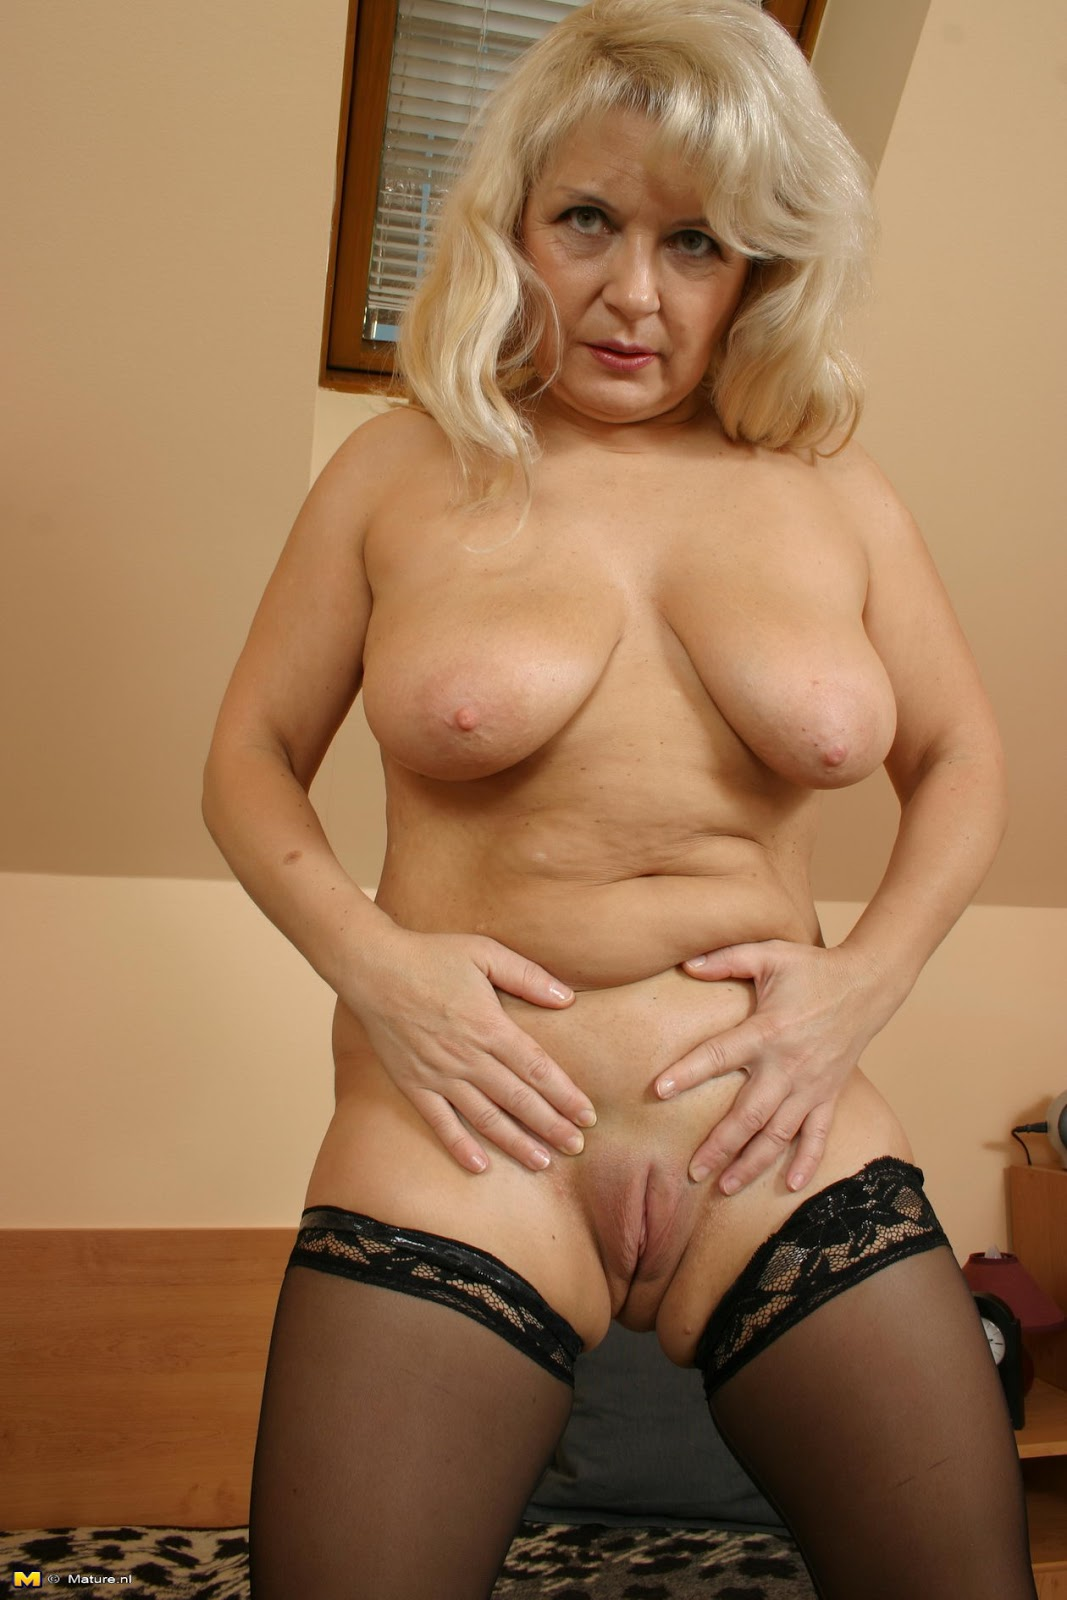 Drunk mature women-7152